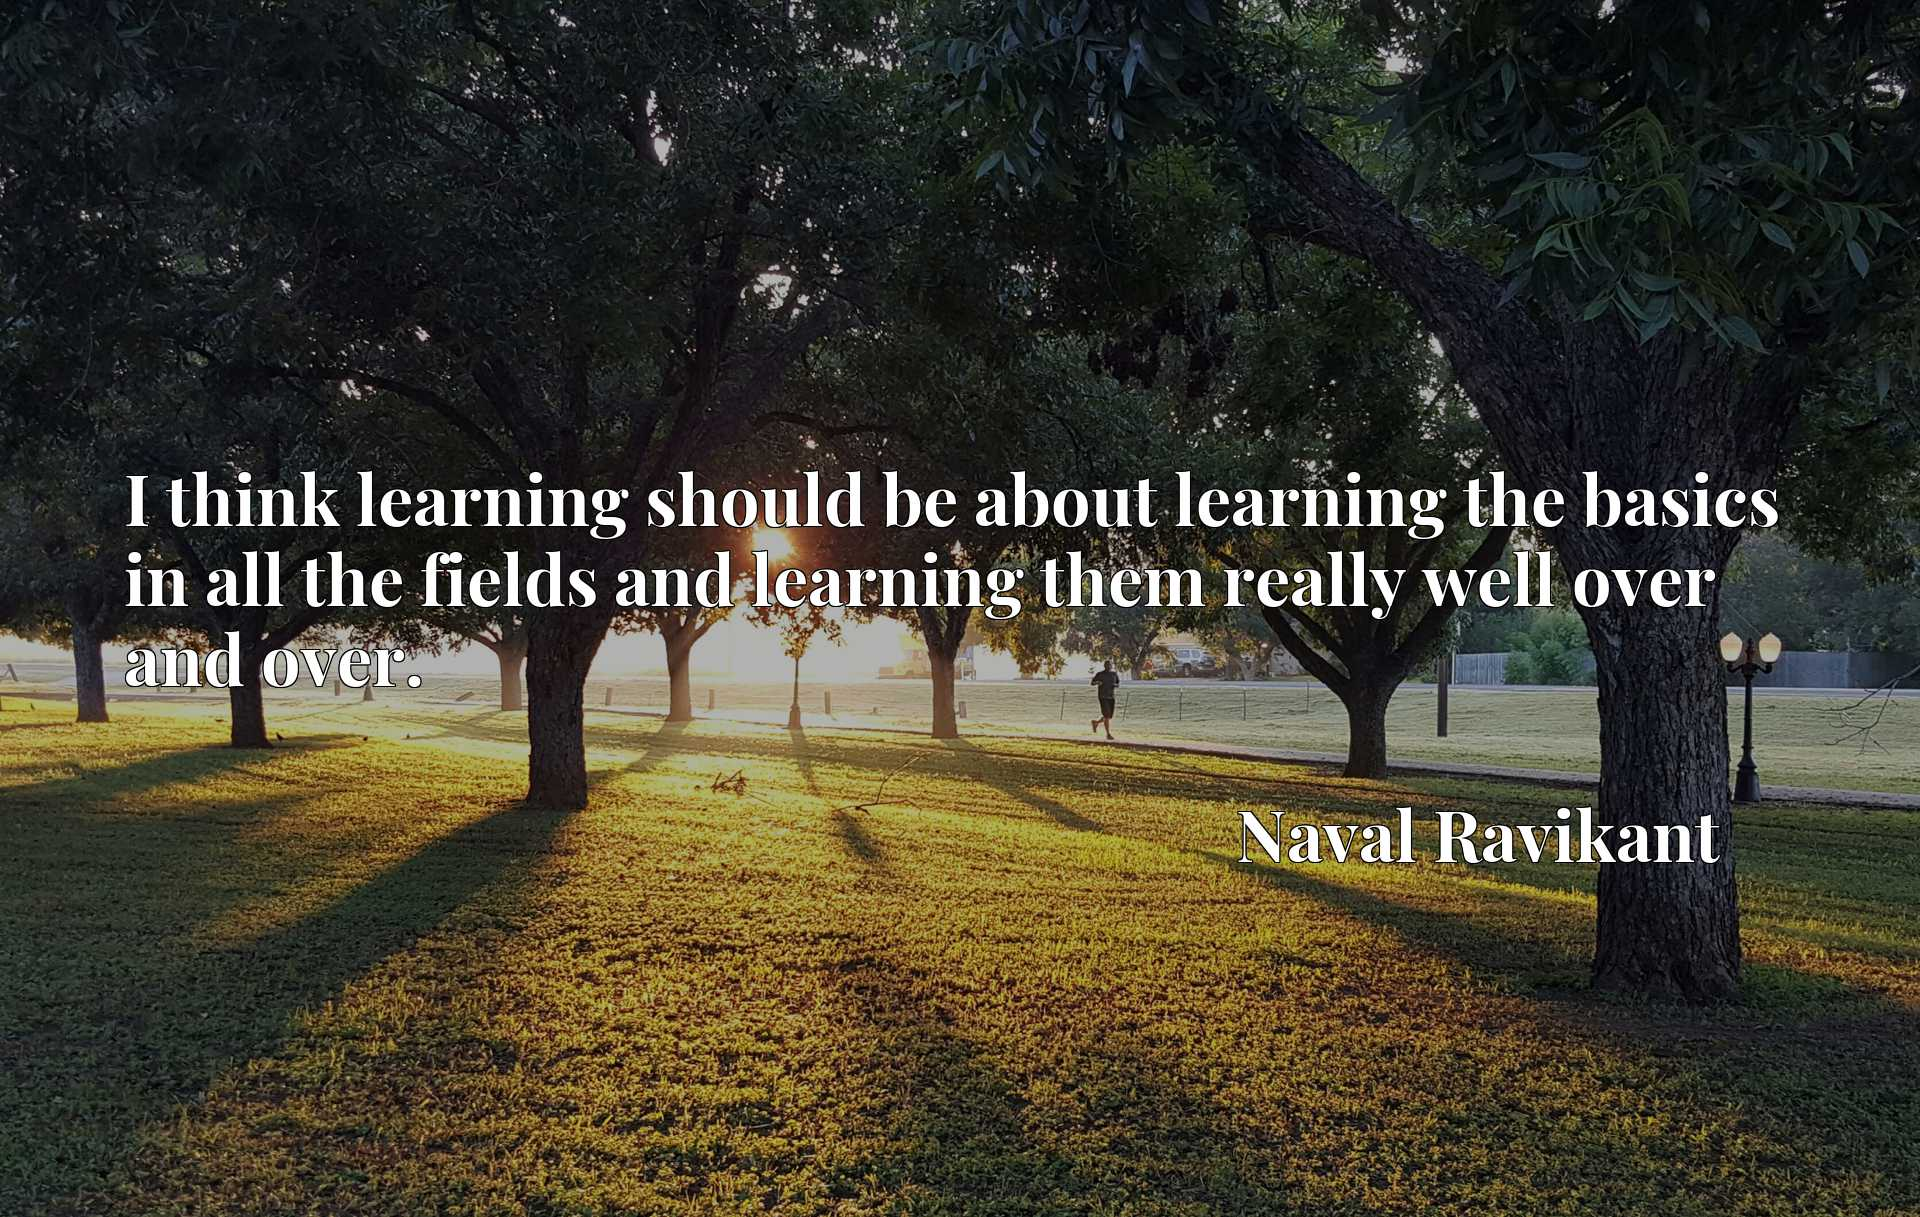 I think learning should be about learning the basics in all the fields and learning them really well over and over.